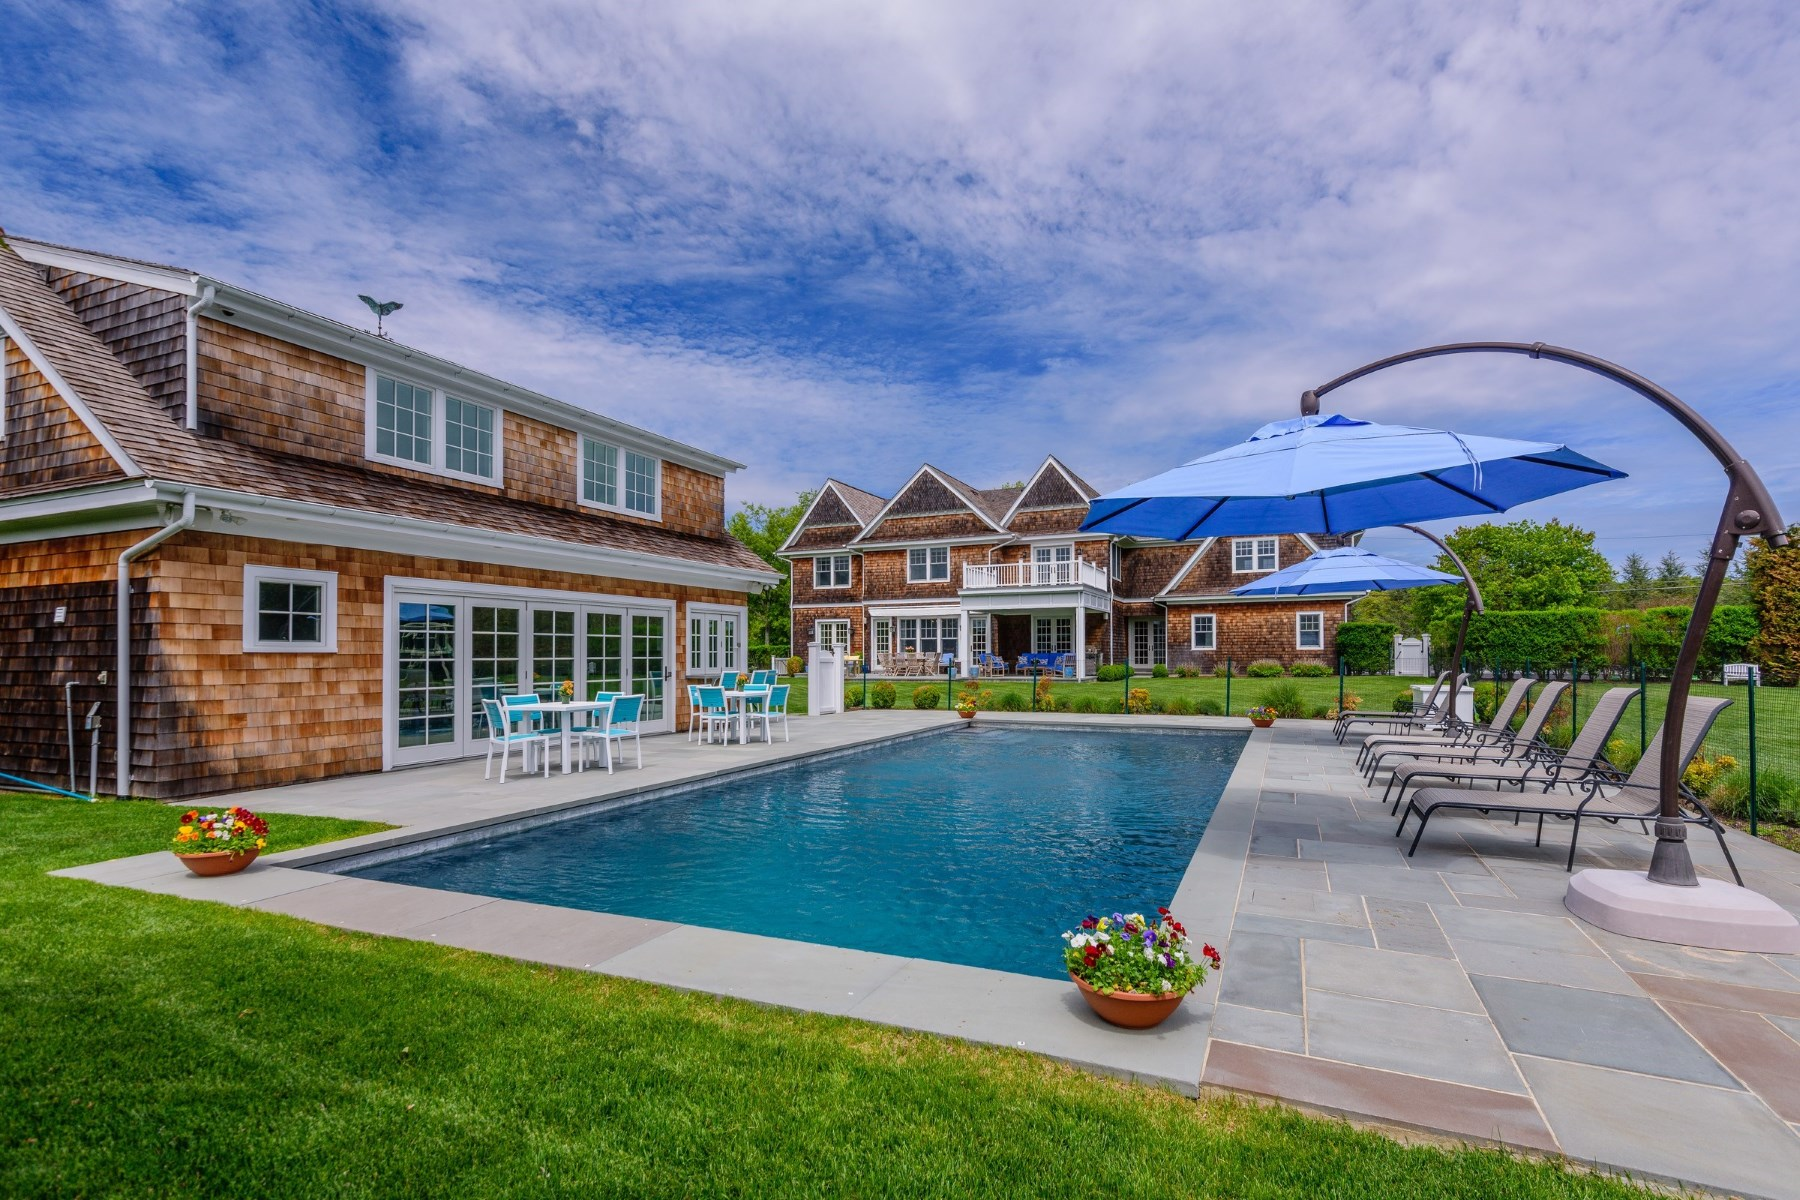 独户住宅 为 销售 在 Resort Living with Sunset Views 590 Lumber Lane Bridgehampton North, 汉普顿, 纽约州, 11932 美国